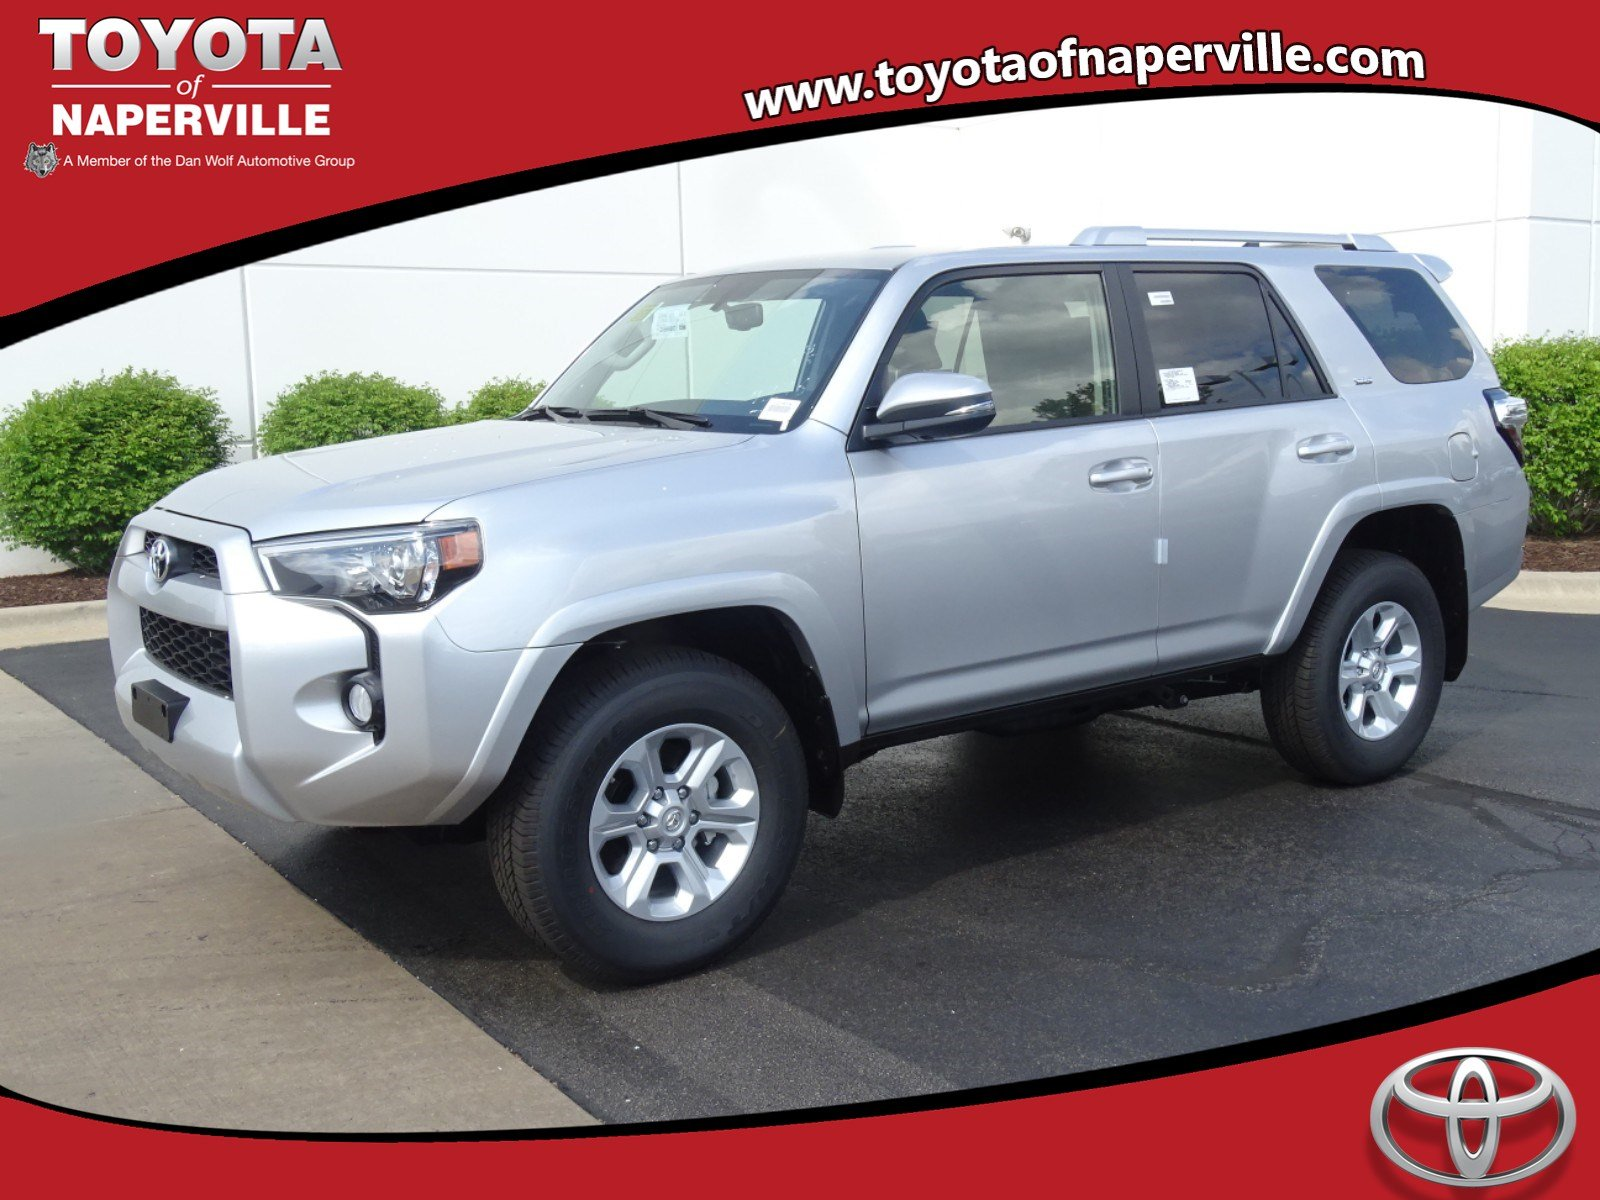 be4042e3d90947ffbd89f84344935ea4 Great Description About Used toyota 4runner for Sale